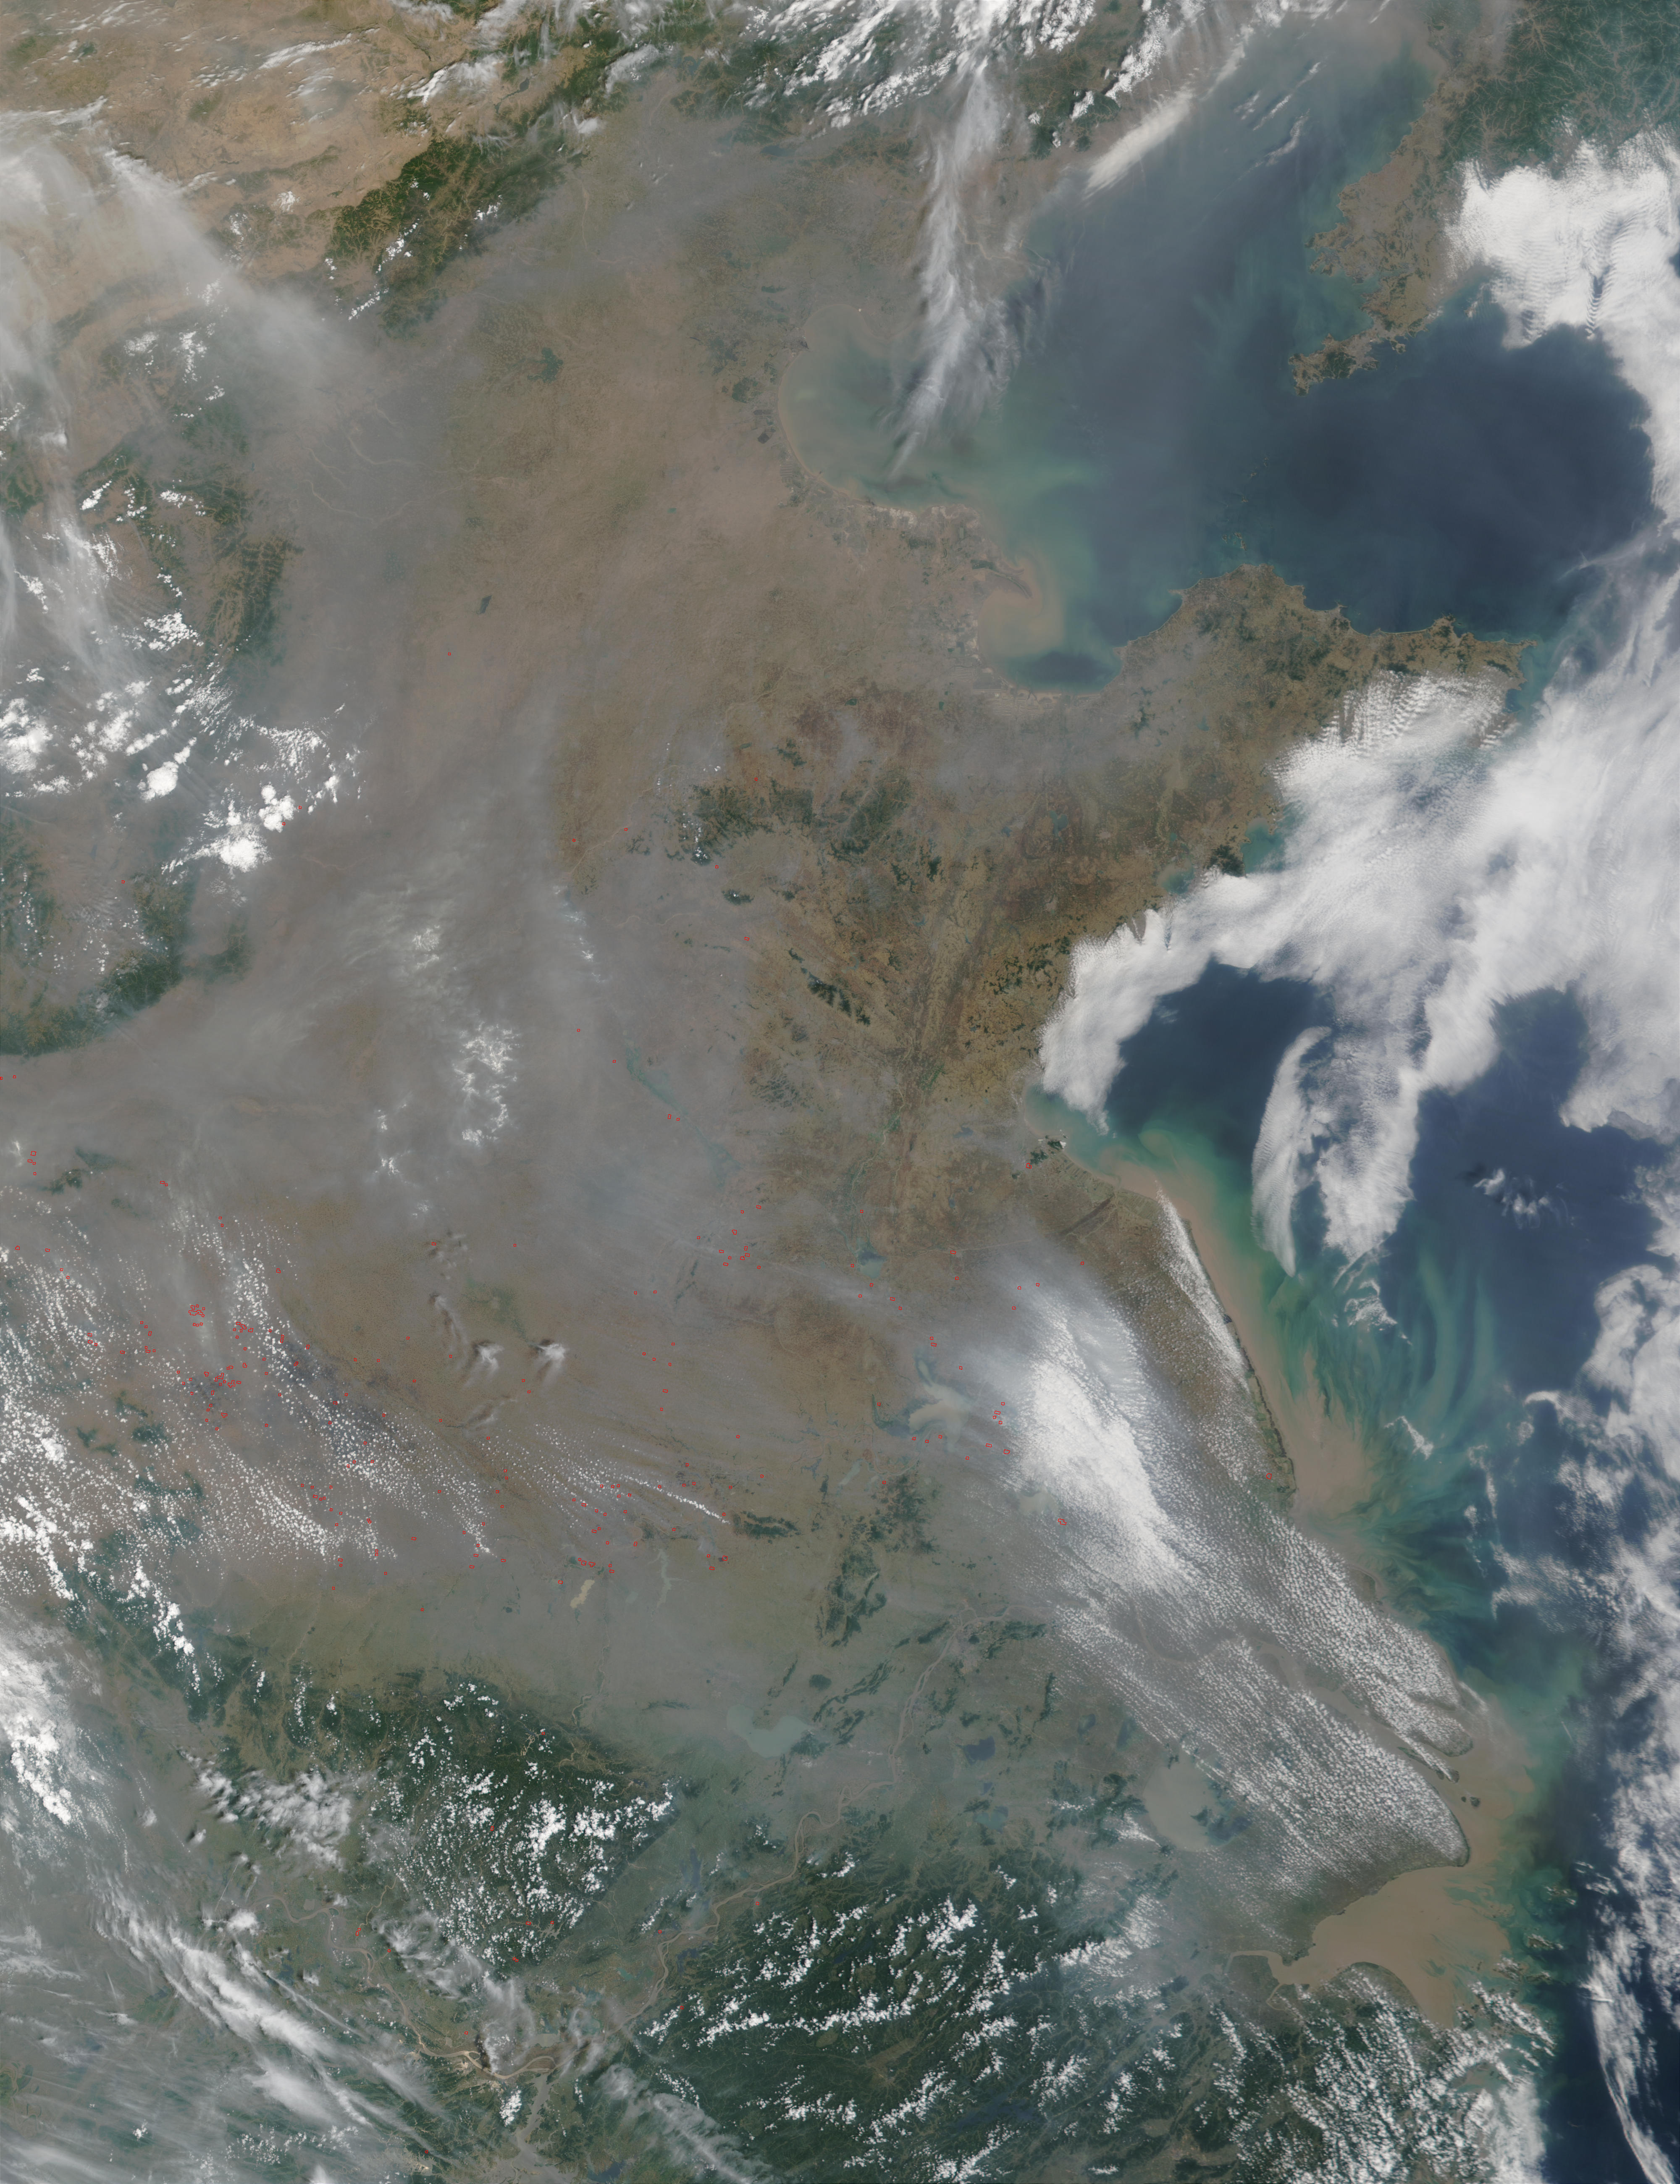 Fires and smoke in China